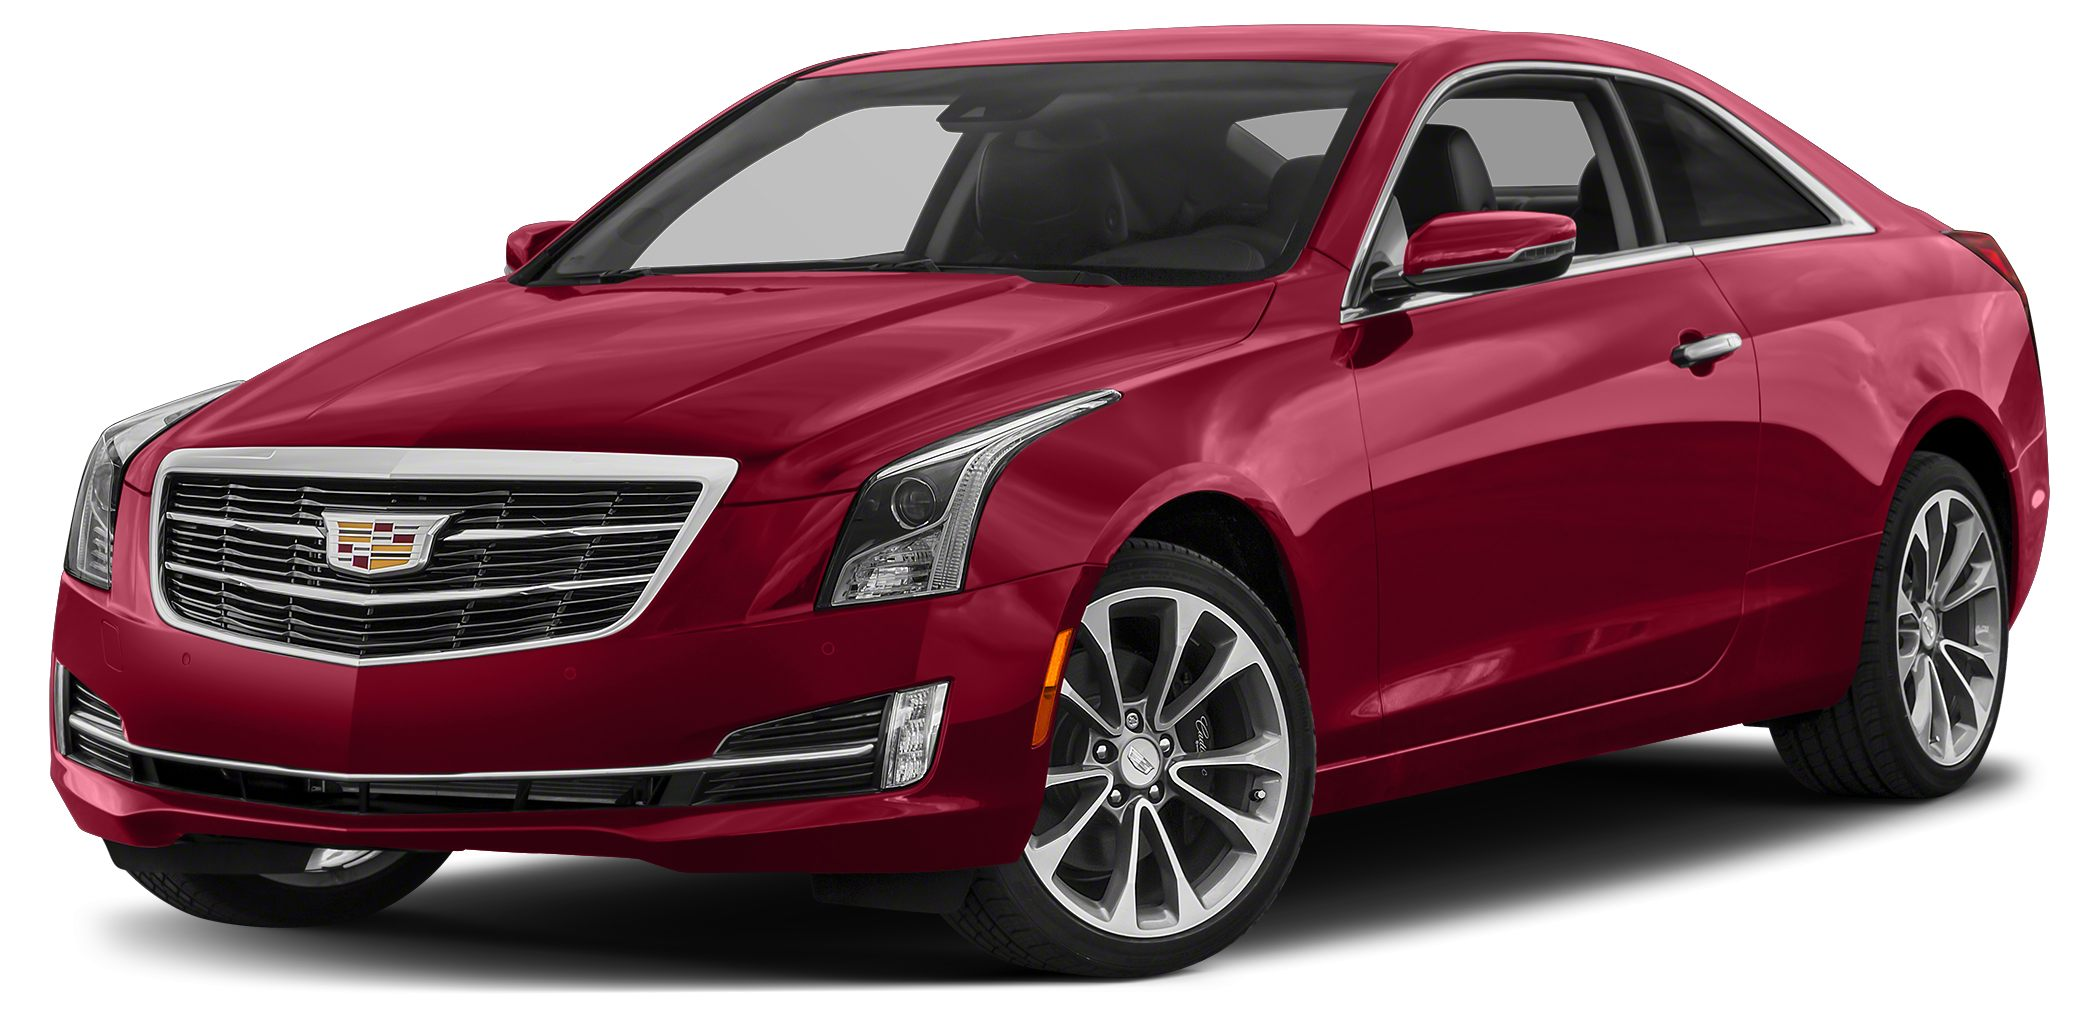 2015 Cadillac ATS 36 Premium  MOONROOF SUNROOF  Cold Weather Package Heated Driver  Front